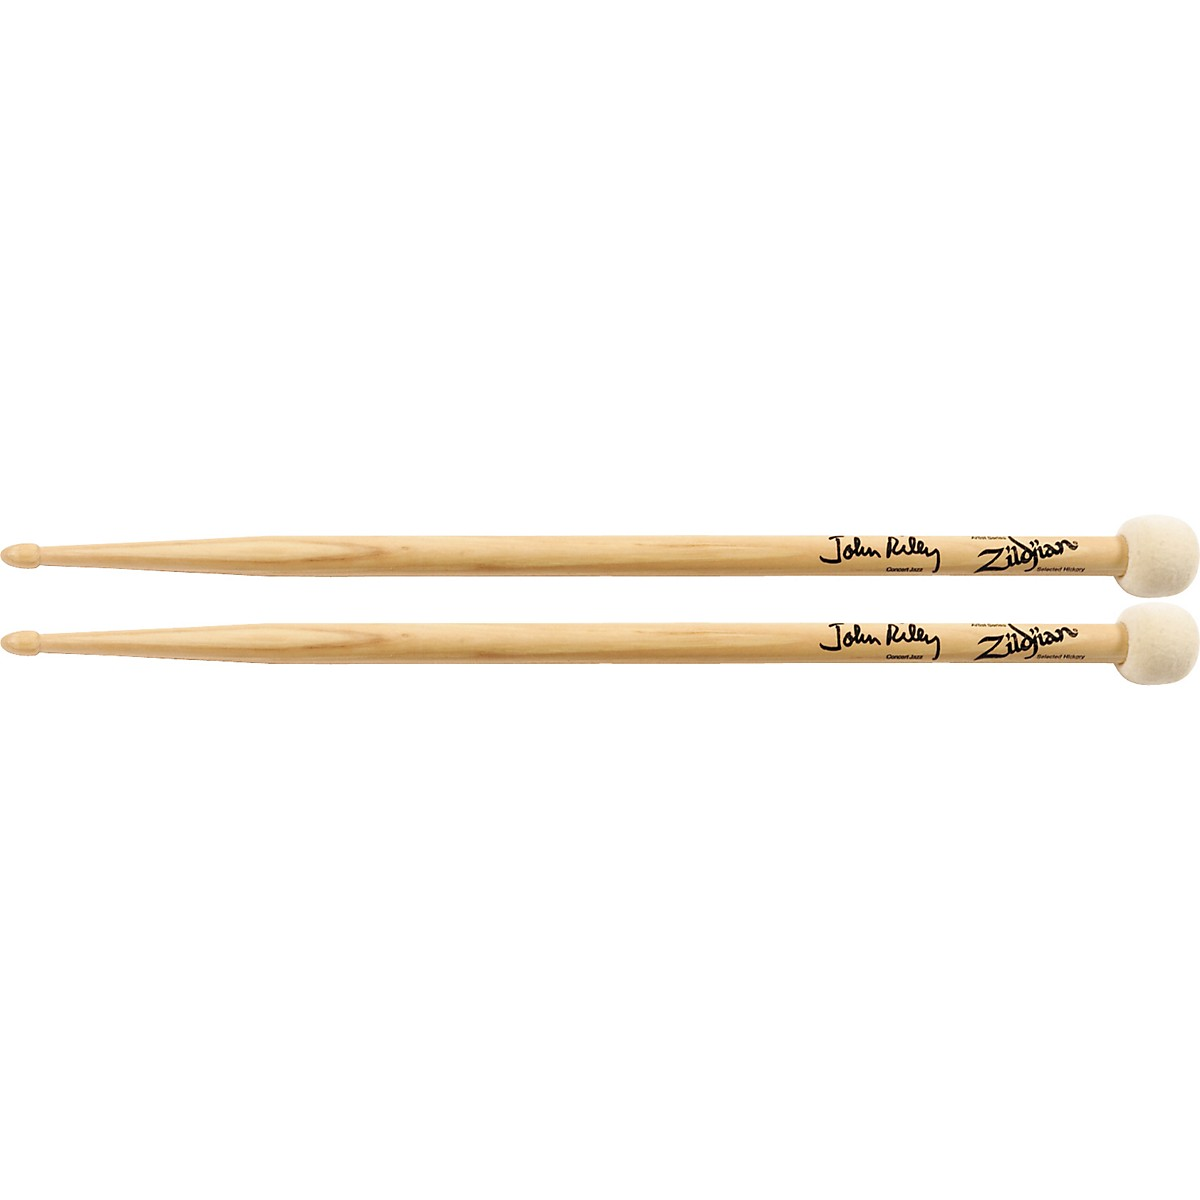 Zildjian John Riley Double Stick-Mallet